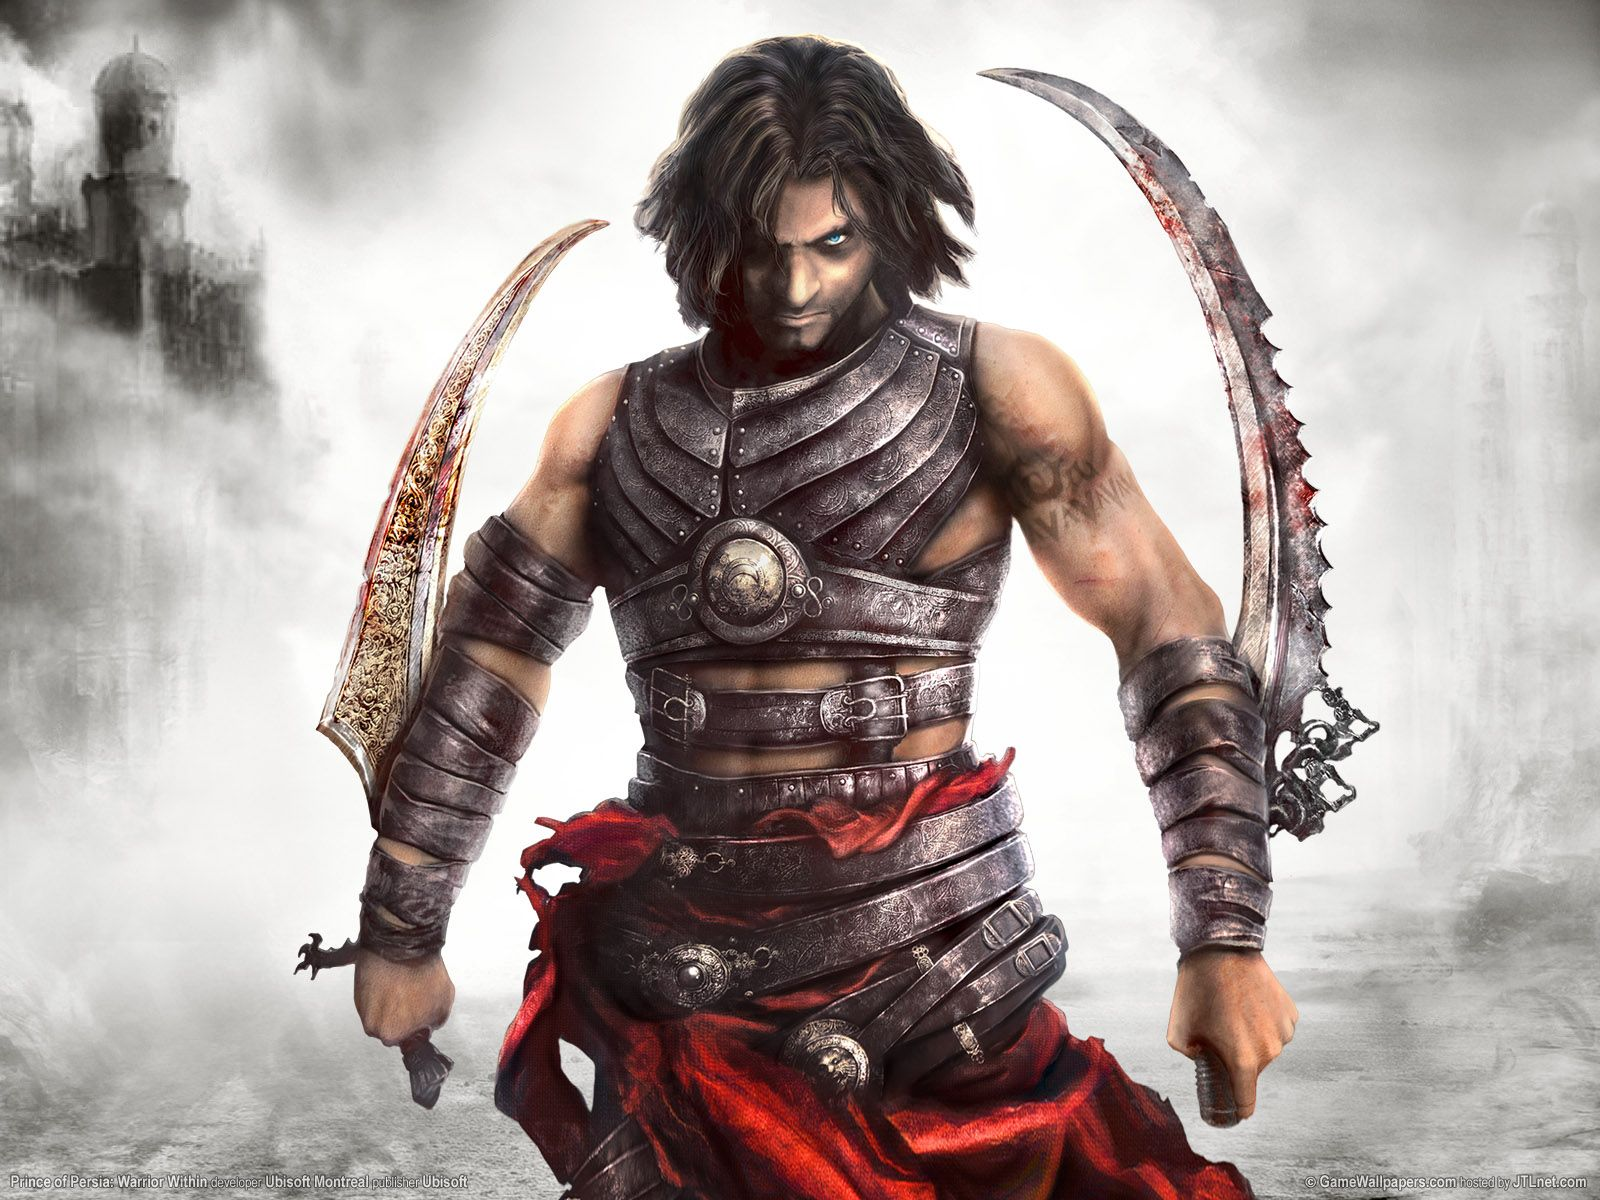 Google Image Result For Http Img Phombo Com Img1 Photocombo 4138 The Best Hd Hq Hi Res Wallpapers Collection Prince Of Persia Warrior Within Fantasy Warrior